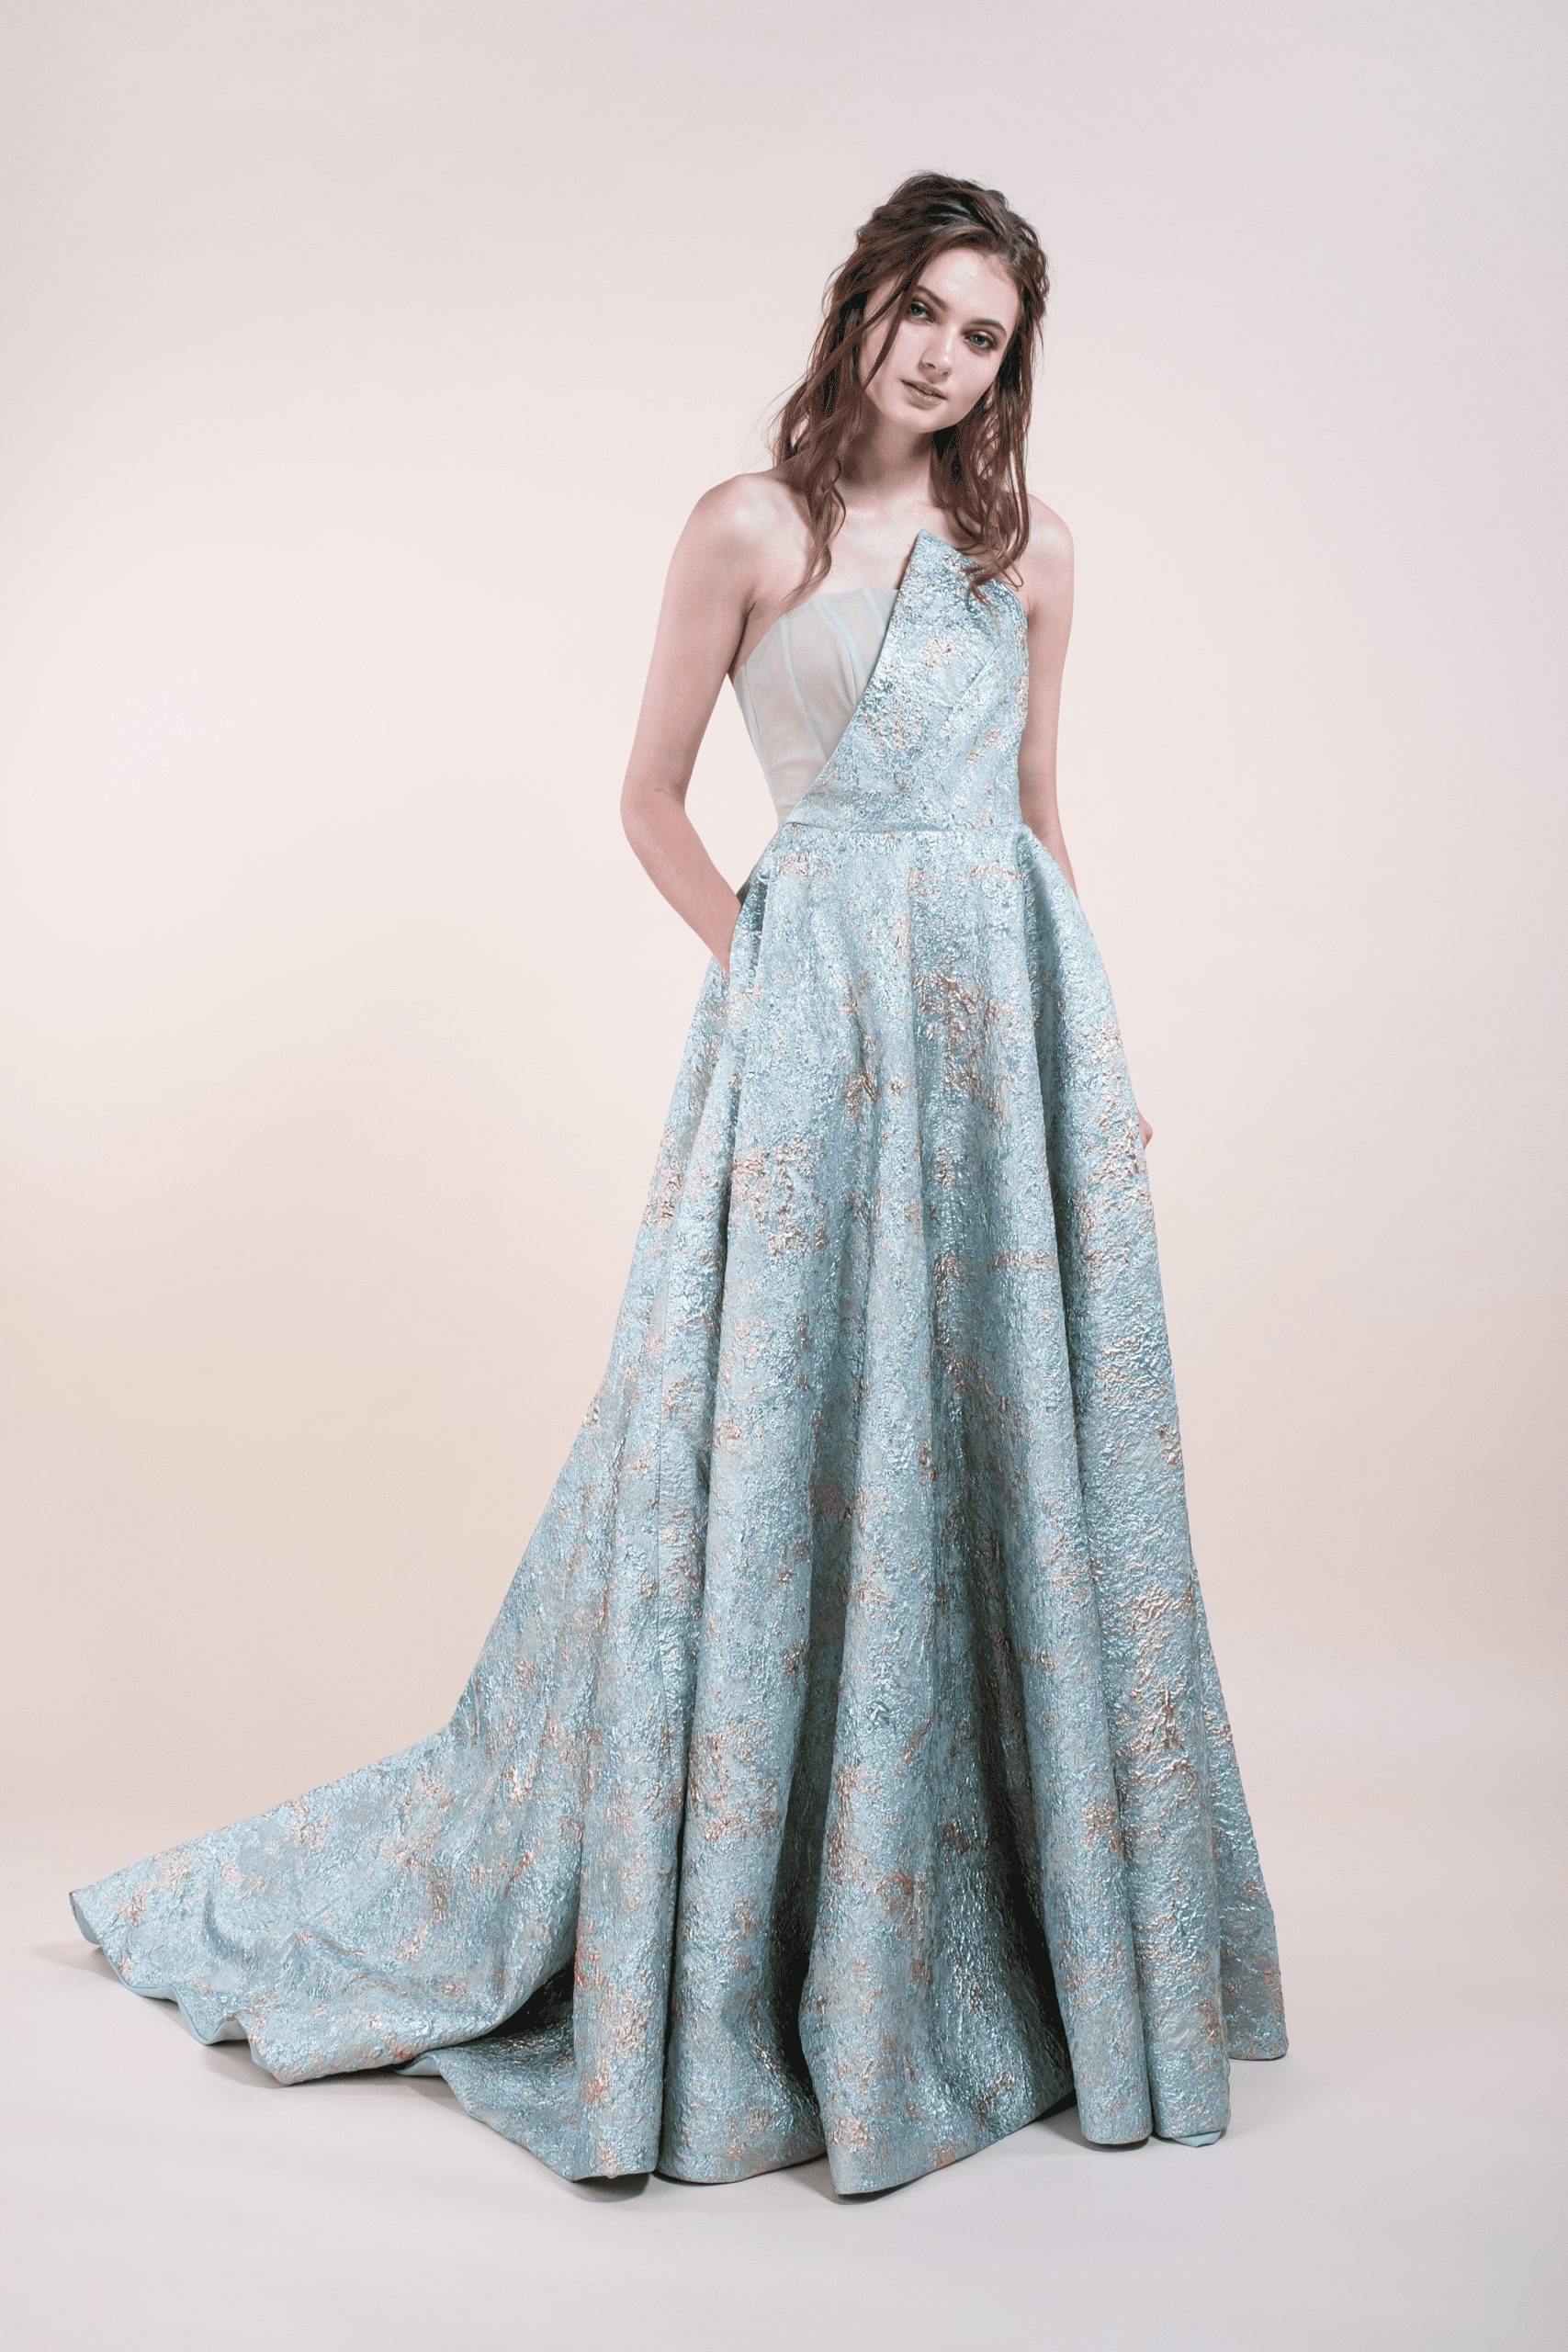 Alexis-affordable-Evening-Dress-for-rent-in-Singapore